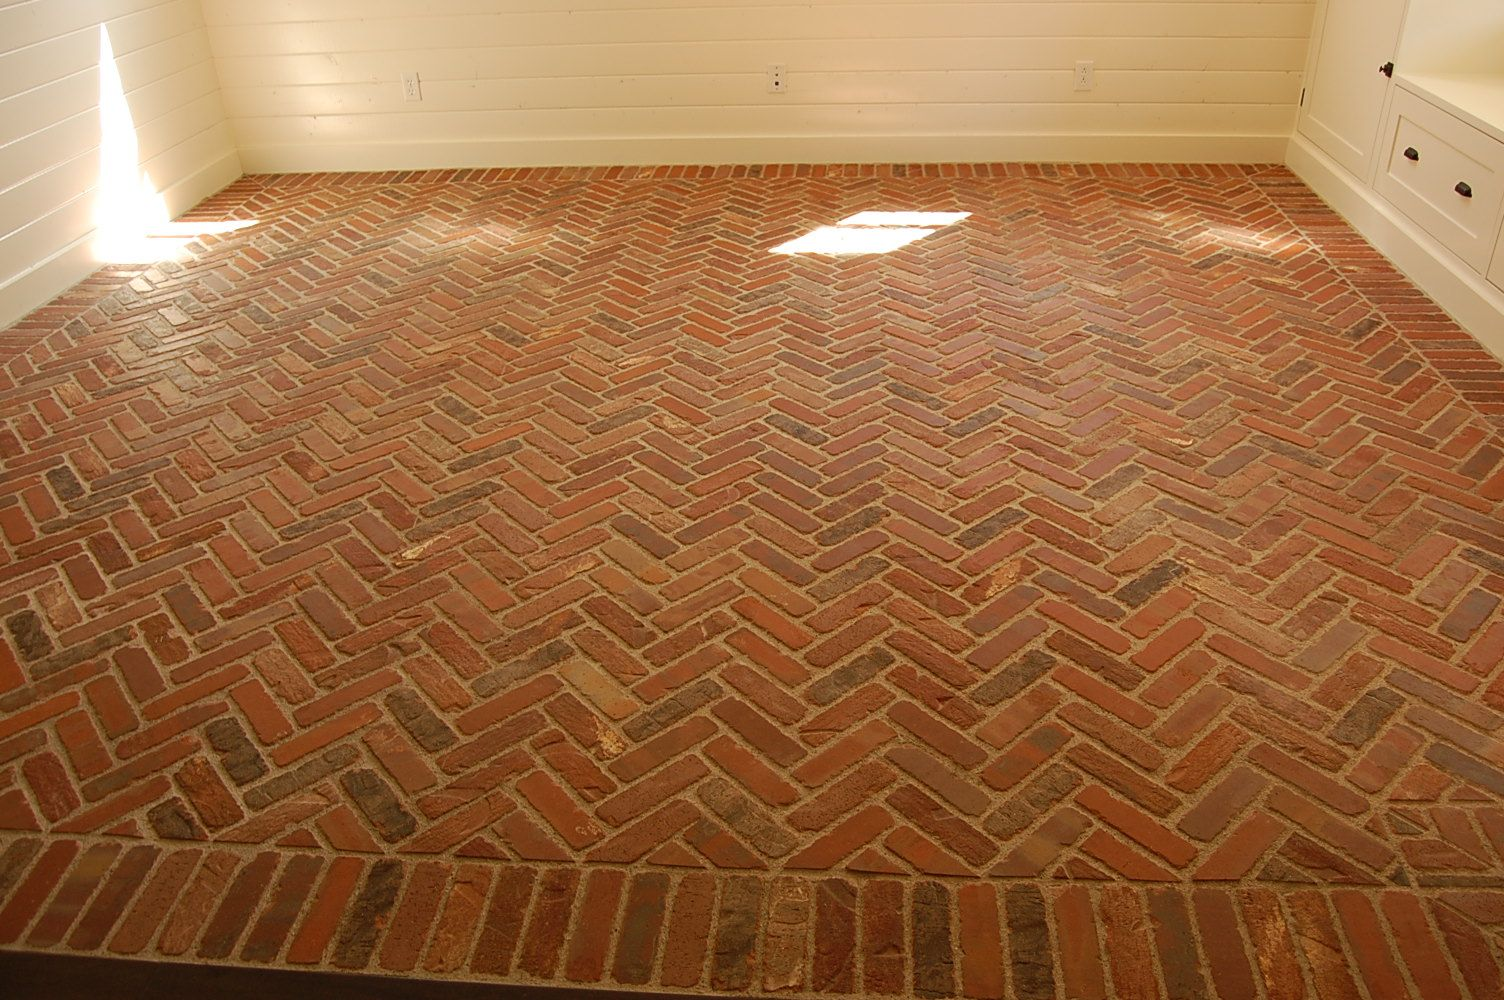 Floor design impressive brown thin brick tile flooring design for floor design impressive brown thin brick tile flooring design for dailygadgetfo Gallery